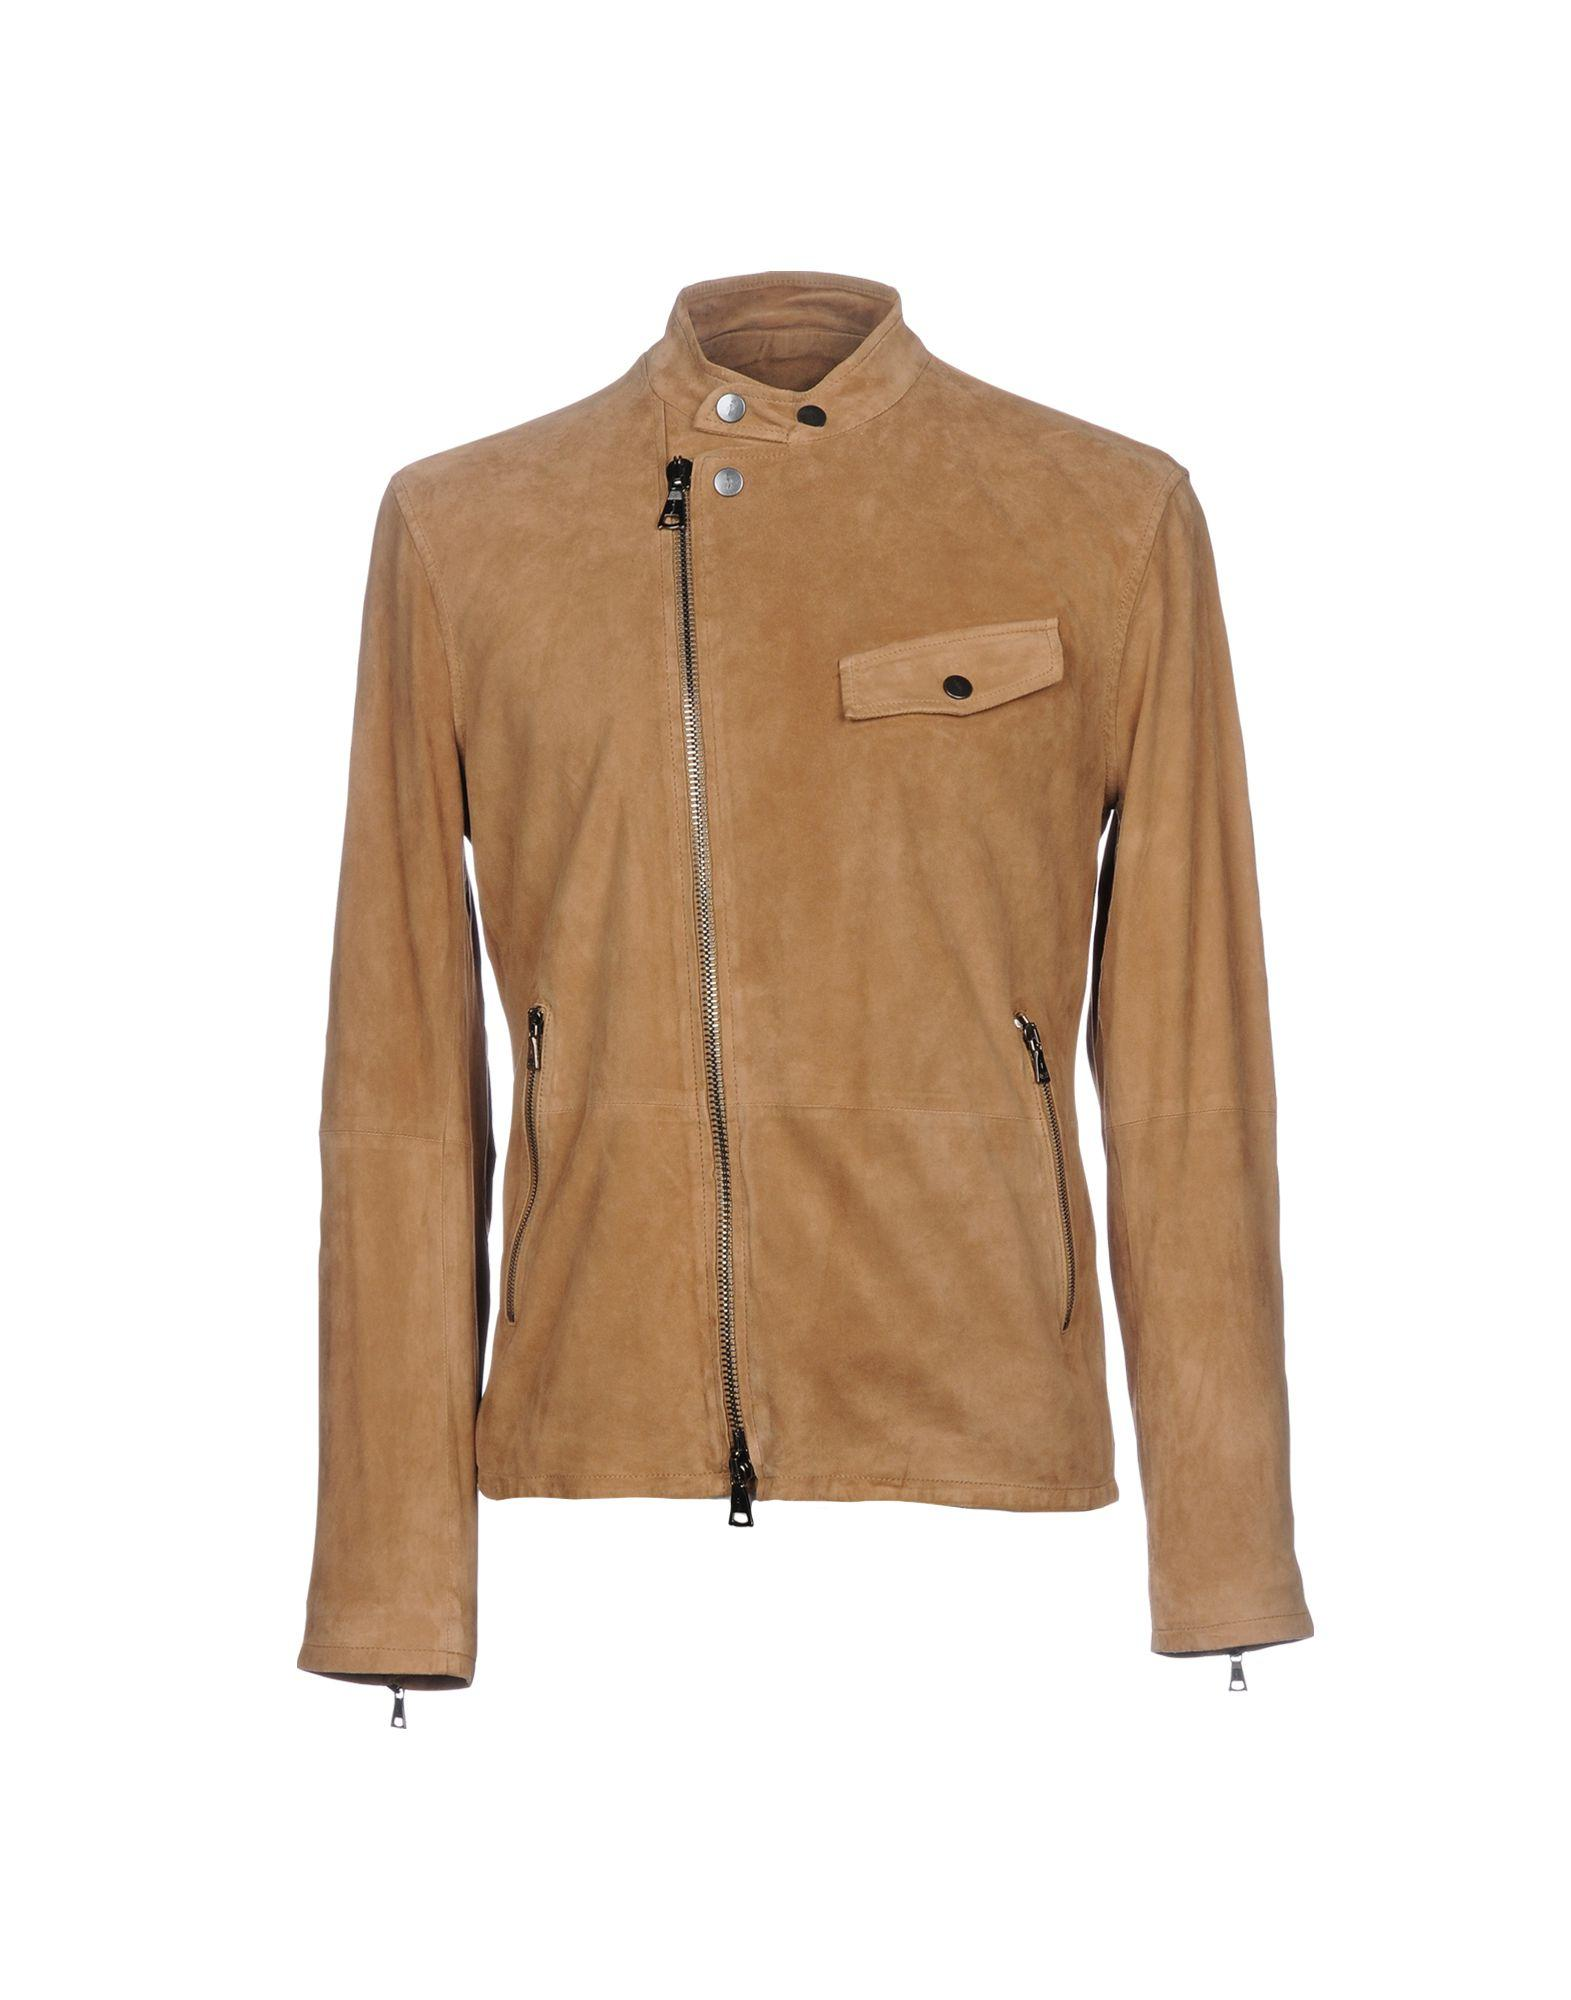 John Varvatos Leather Jacket In Camel